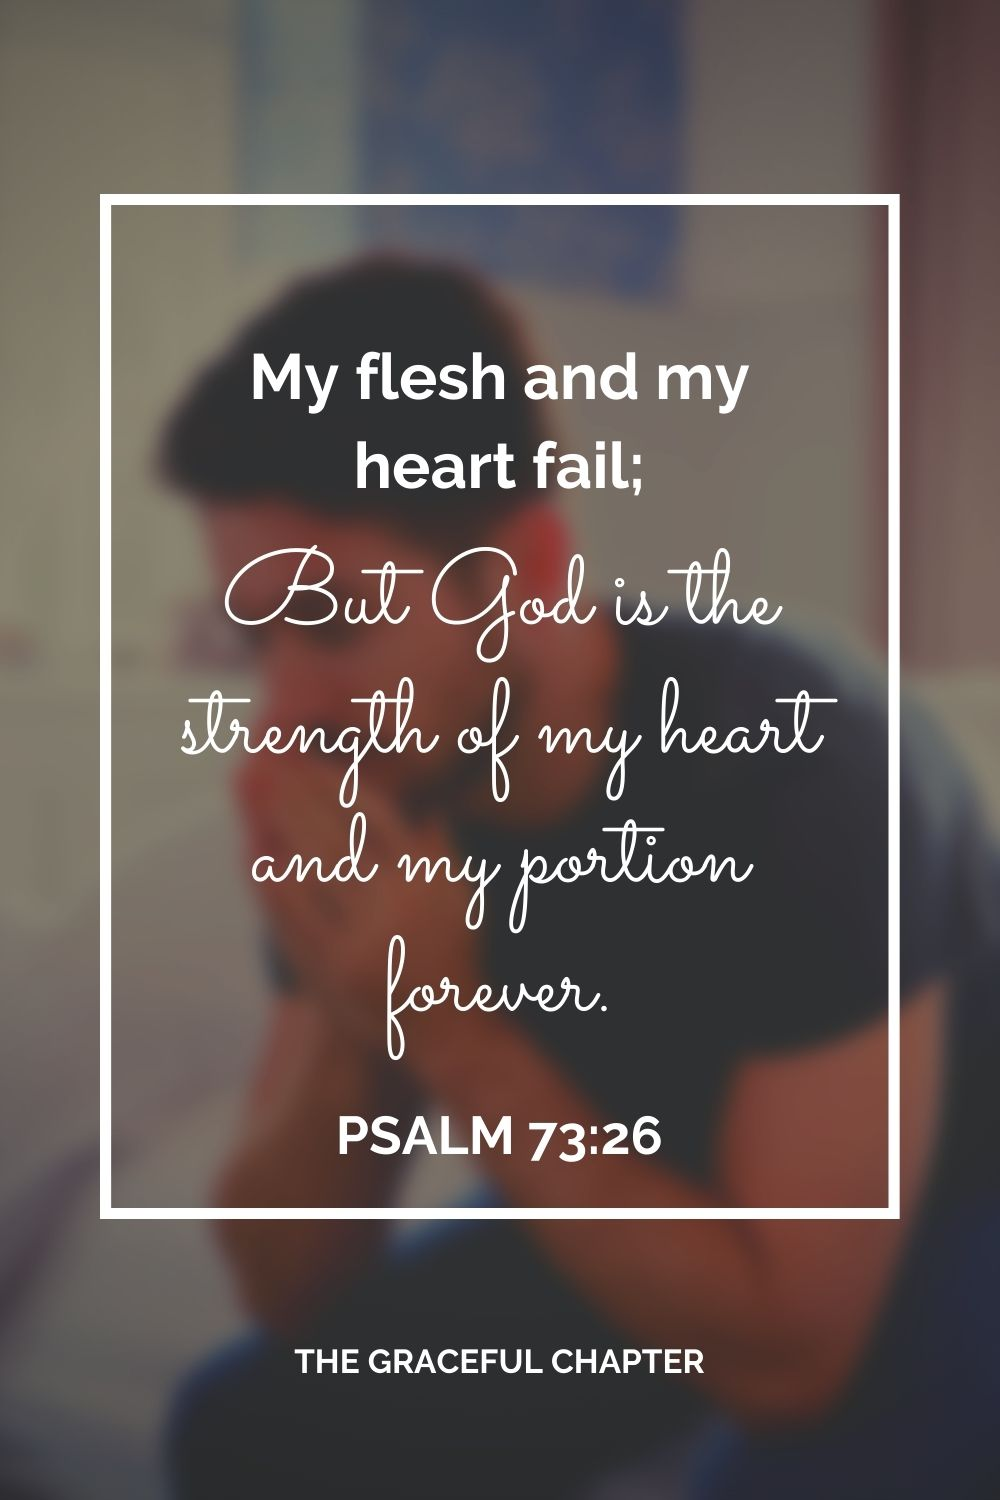 My flesh and my heart fail; But God is the strength of my heart and my portion forever. Psalm 73:26